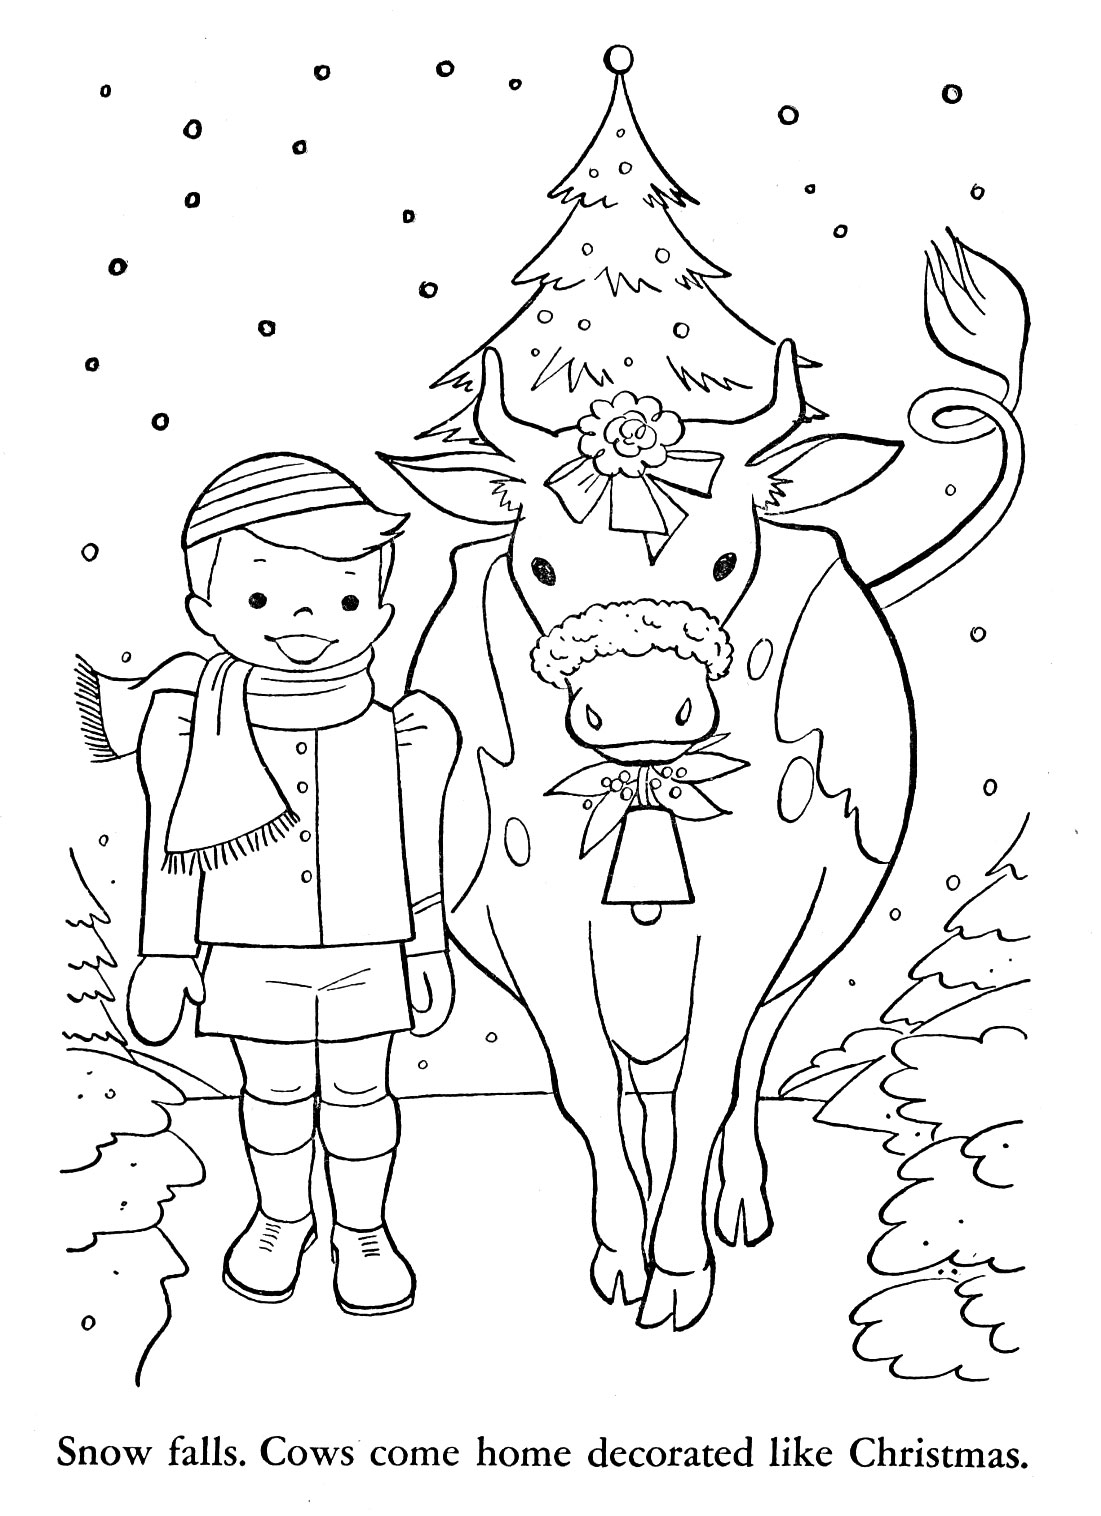 swiss scenes coloring pages - photo#9